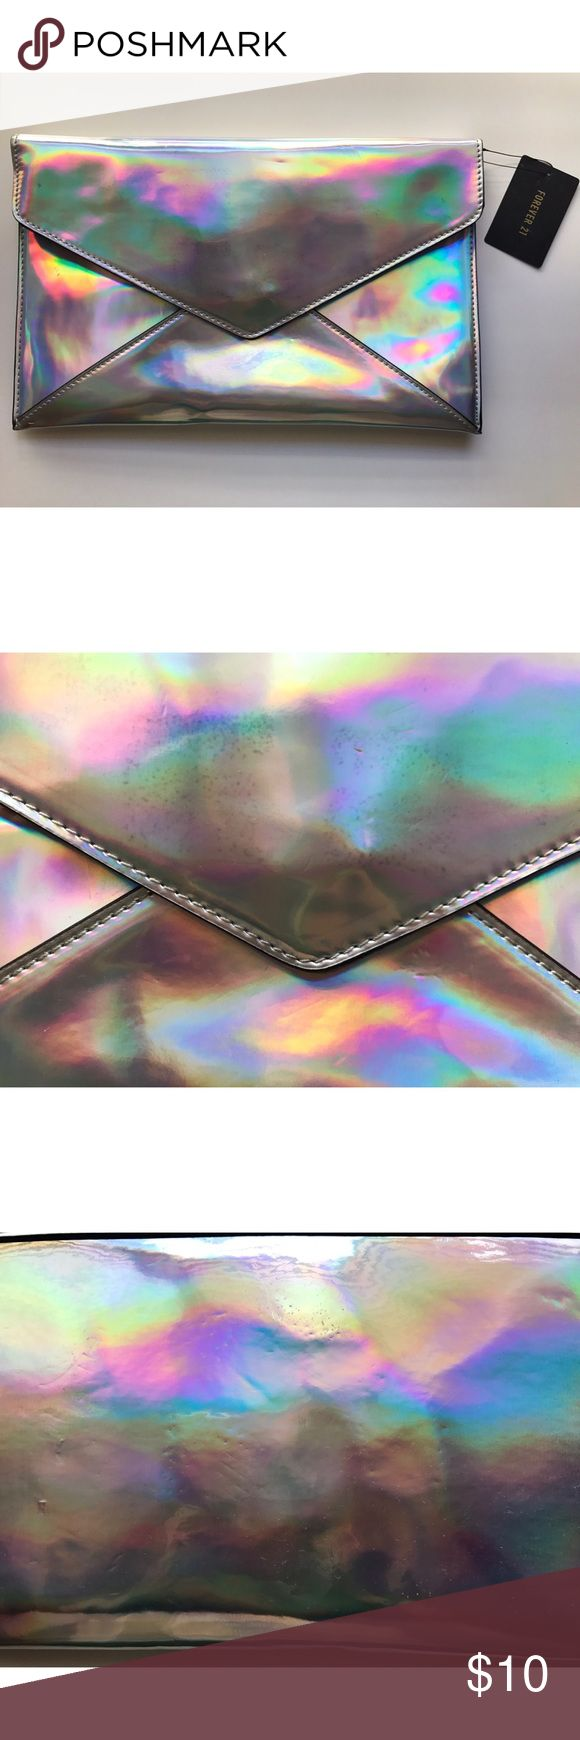 Forever 21 Holographic Clutch Forever 21 Holographic Clutch. NWT, but has small dents in it as shown due to just being in my closet. Forever 21 Bags Clutches & Wristlets